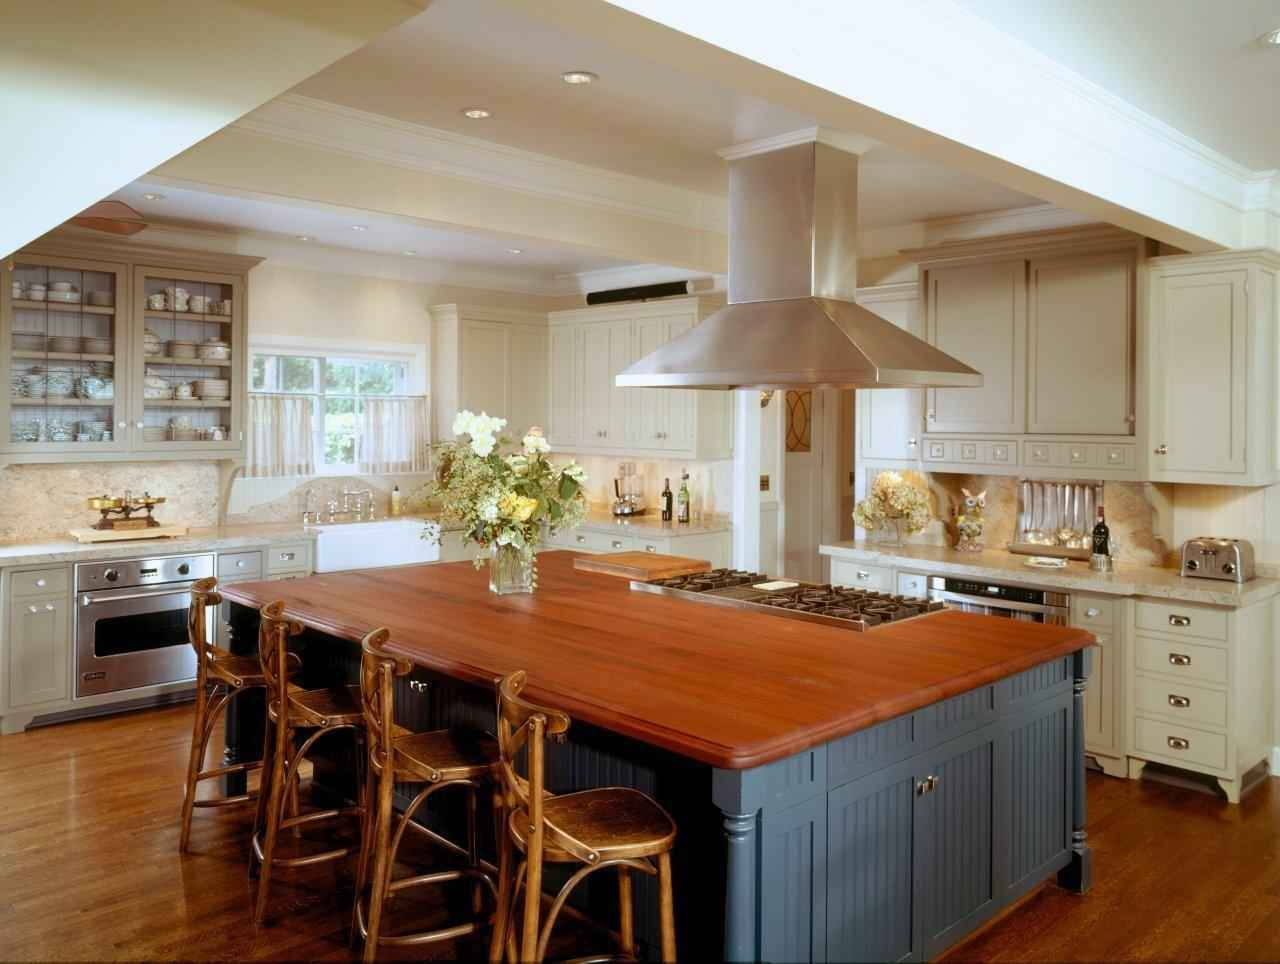 Remarkable Kitchen Island with Seating Ideas 1280 x 964 · 69 kB · jpeg